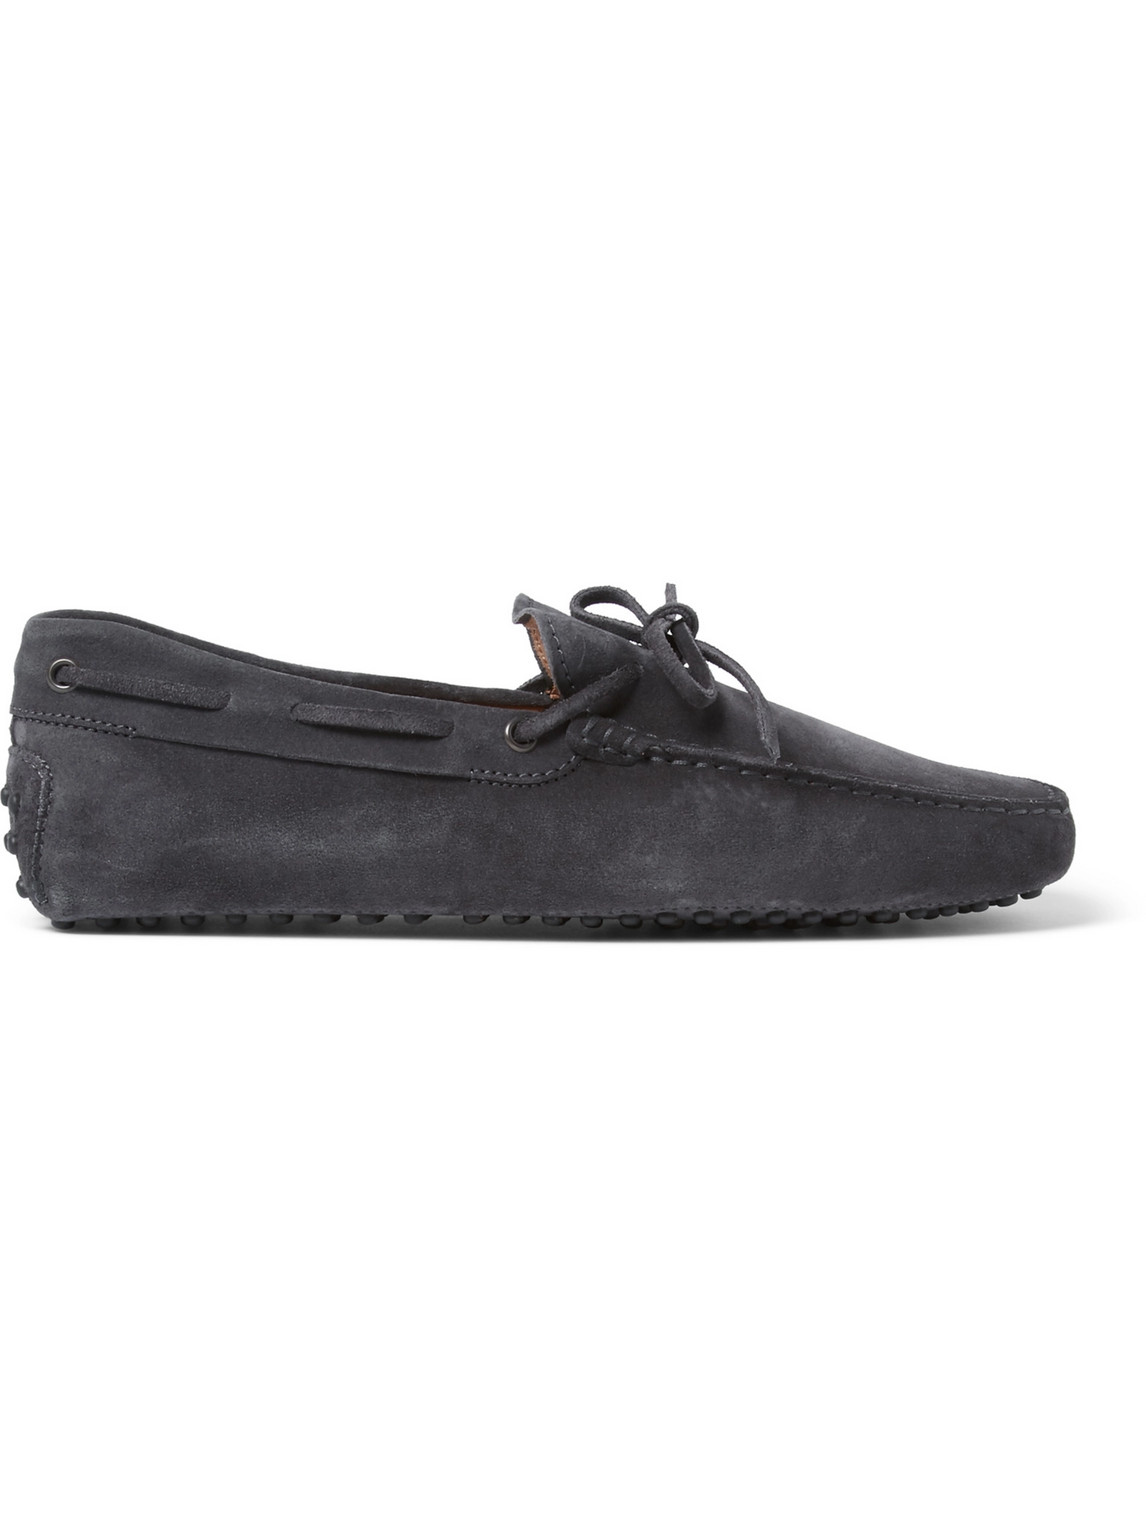 Tod's - Gommino Suede Driving Shoes - Men - Gray - 6